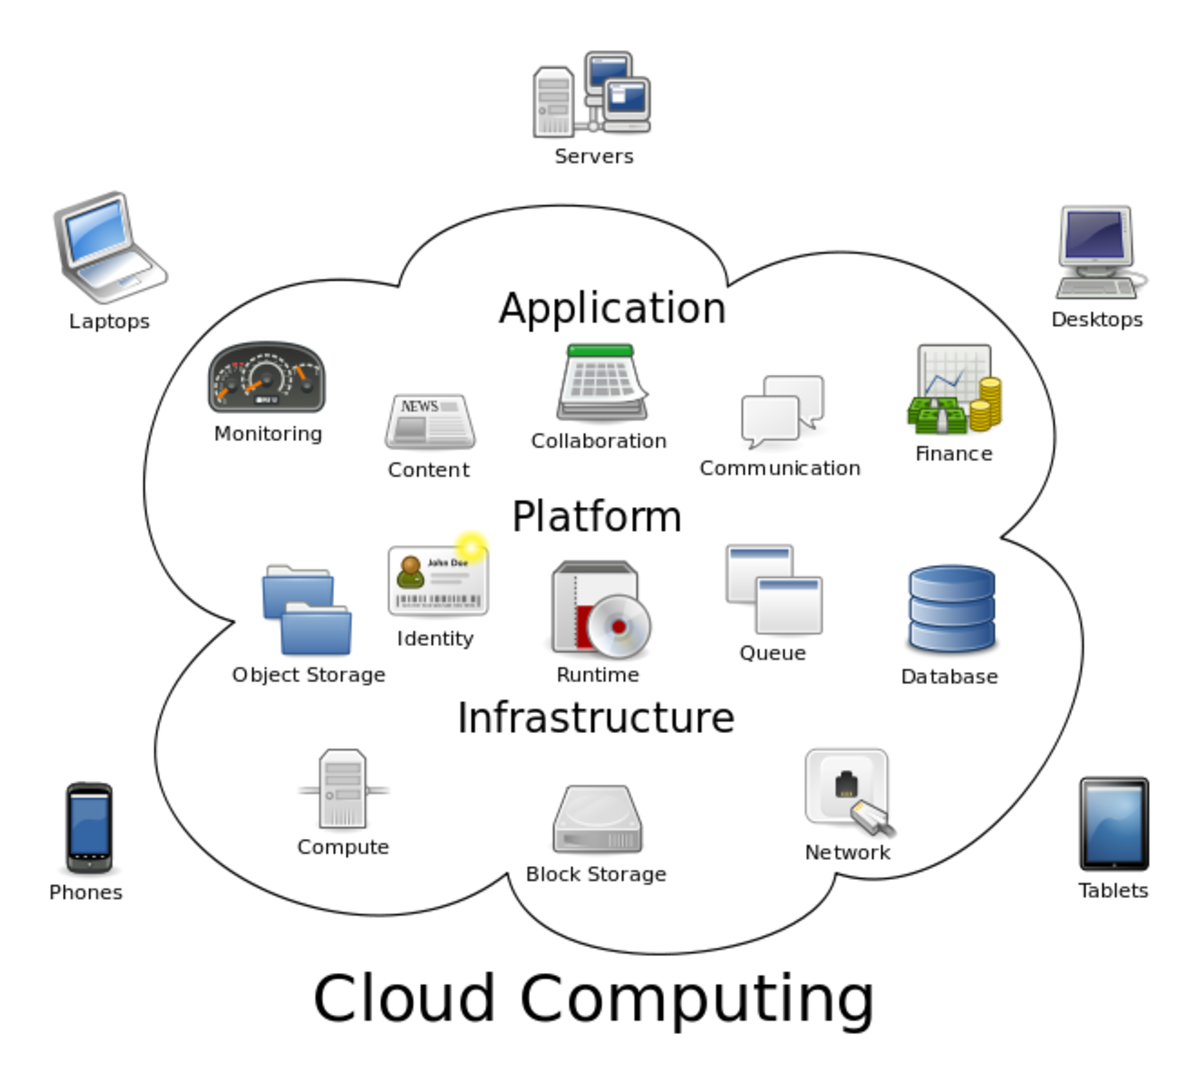 A diagram showing the overview of cloud computing. By Sam Johnston [CC-BY-SA-3.0 (http://creativecommons.org/licenses/by-sa/3.0)], via Wikimedia Commons